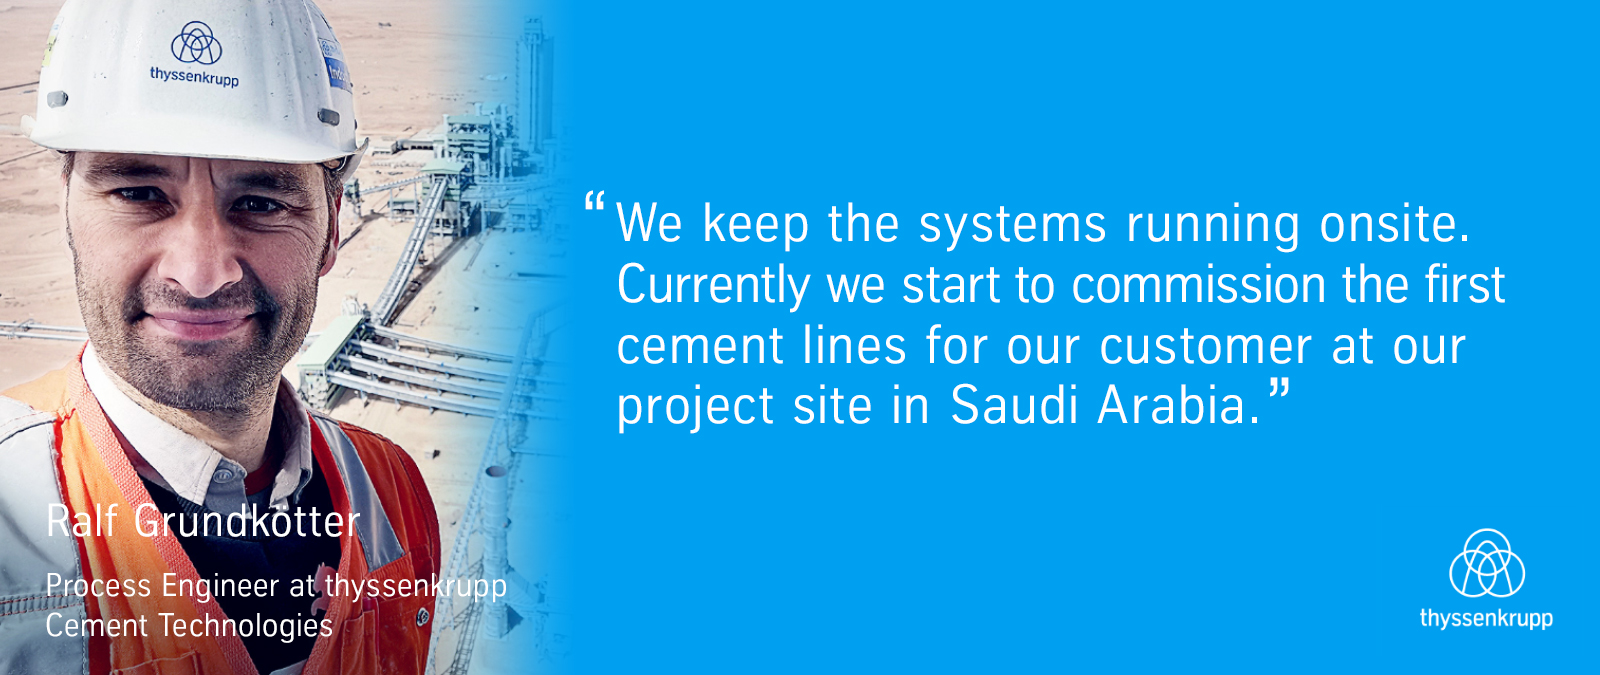 In Saudi Arabia the team is working together to ensure the systems on site are running smoothly.